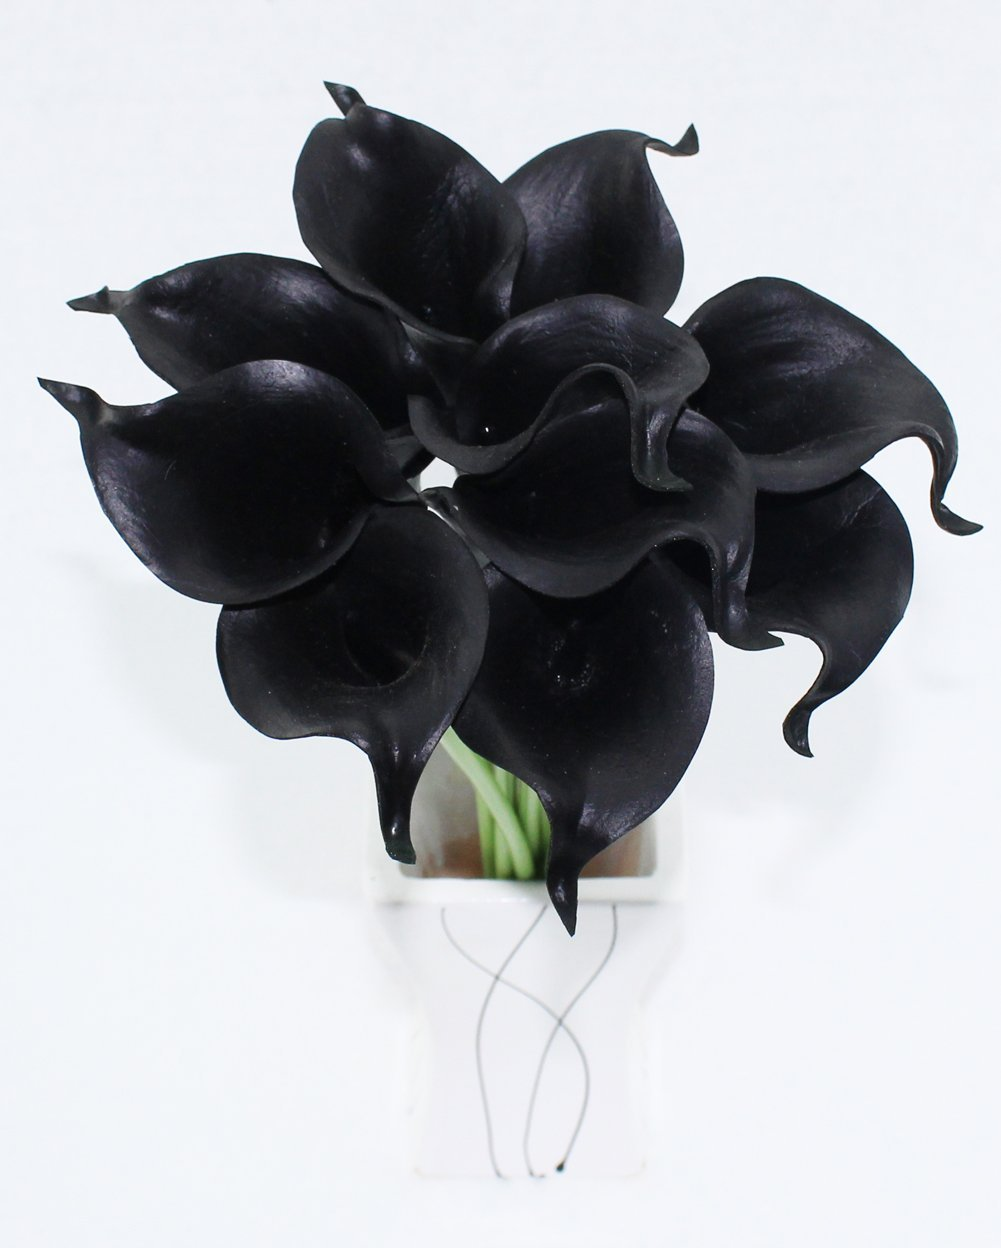 Cheap black lily vase find black lily vase deals on line at alibaba get quotations simpleyourstyle calla lily artificial flower 10pcs no vase bridal wedding bouquet 10 head latex real touch izmirmasajfo